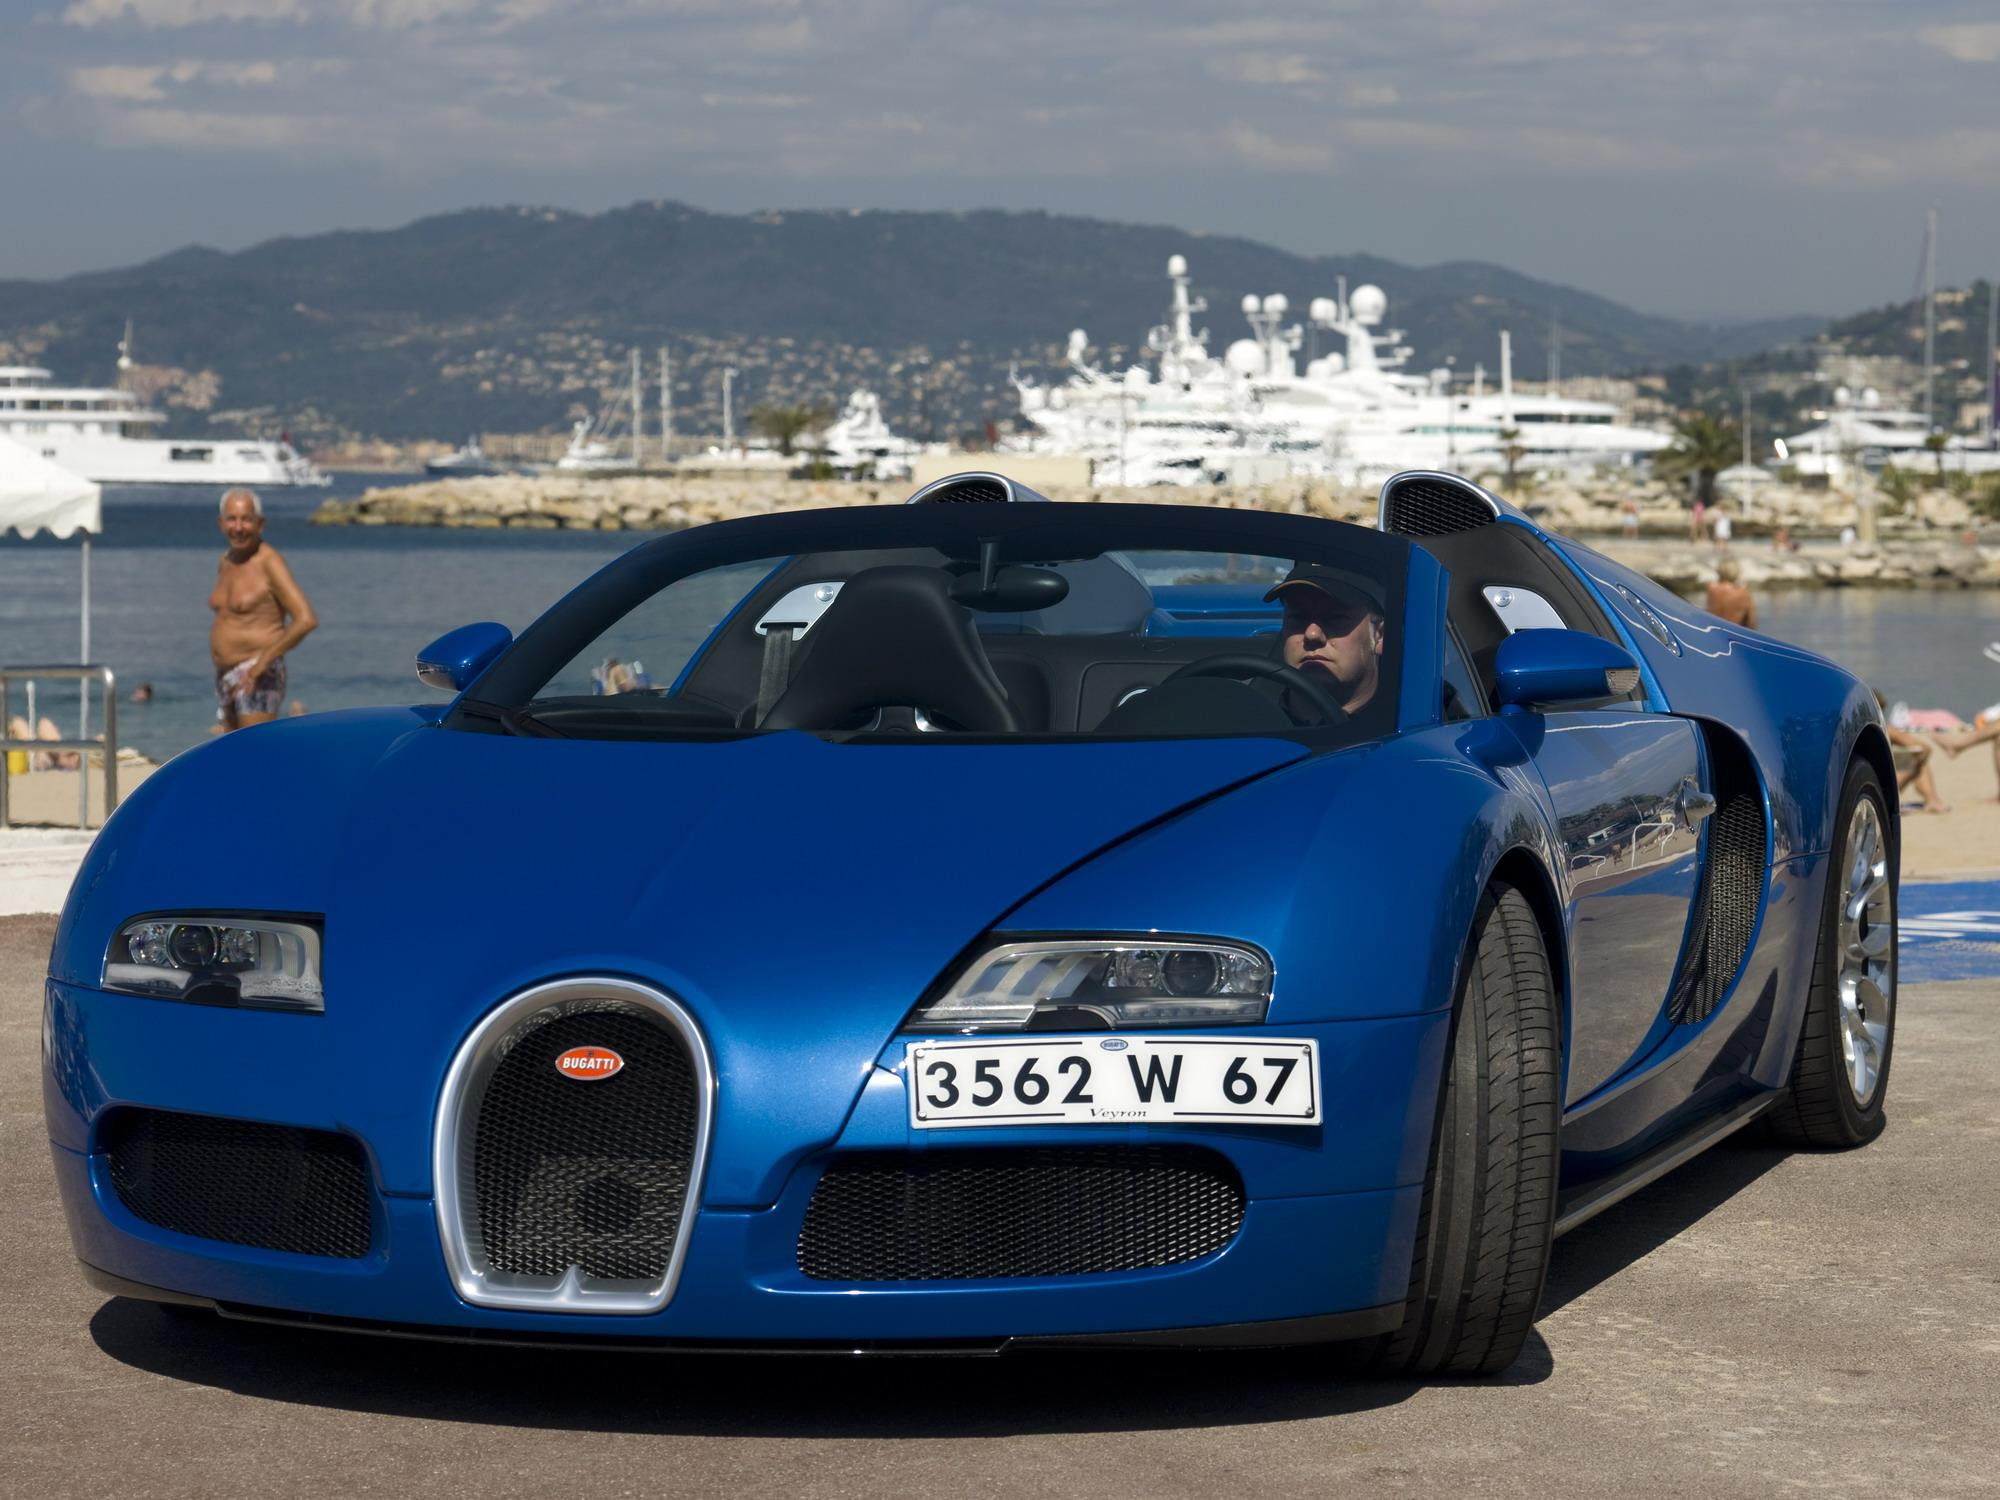 bugatti veyron 16 4 grand sport production begins news. Black Bedroom Furniture Sets. Home Design Ideas